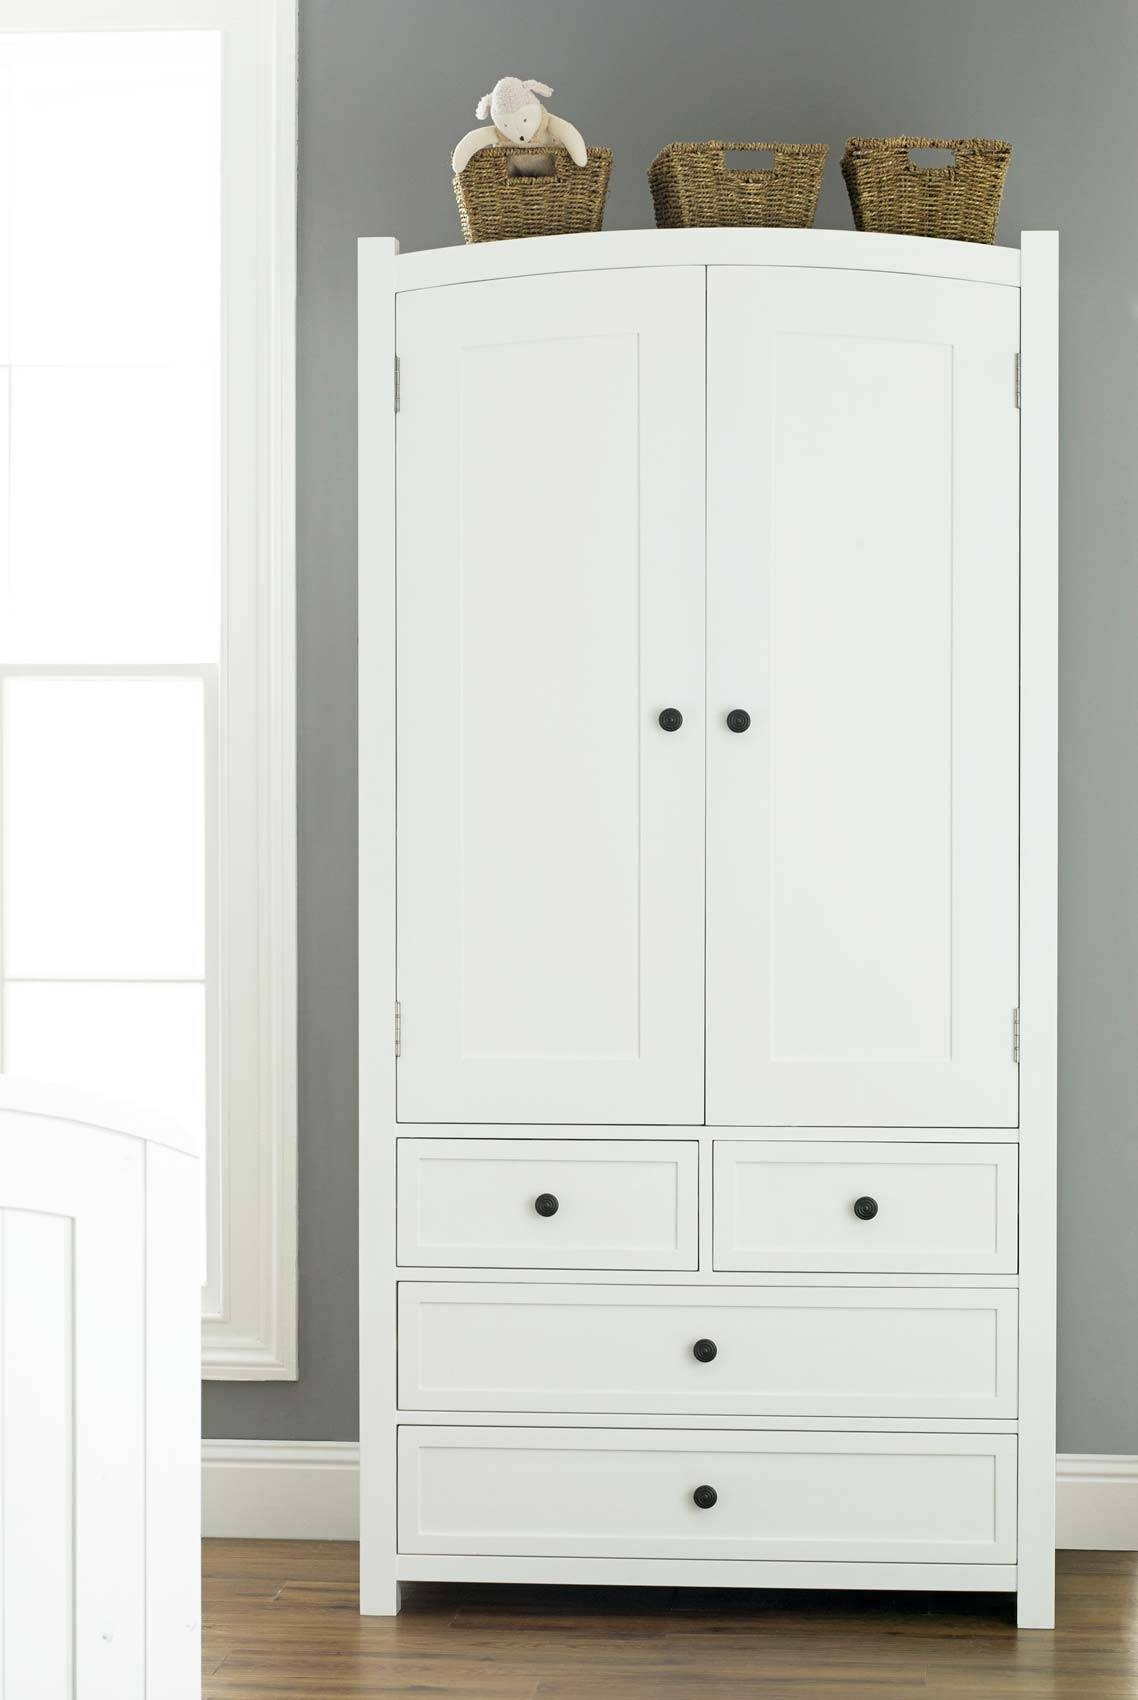 Flawless White Wooden Kids Wardrobe With Drawers And Brown Wicker regarding Childrens Wardrobes With Drawers and Shelves (Image 12 of 30)